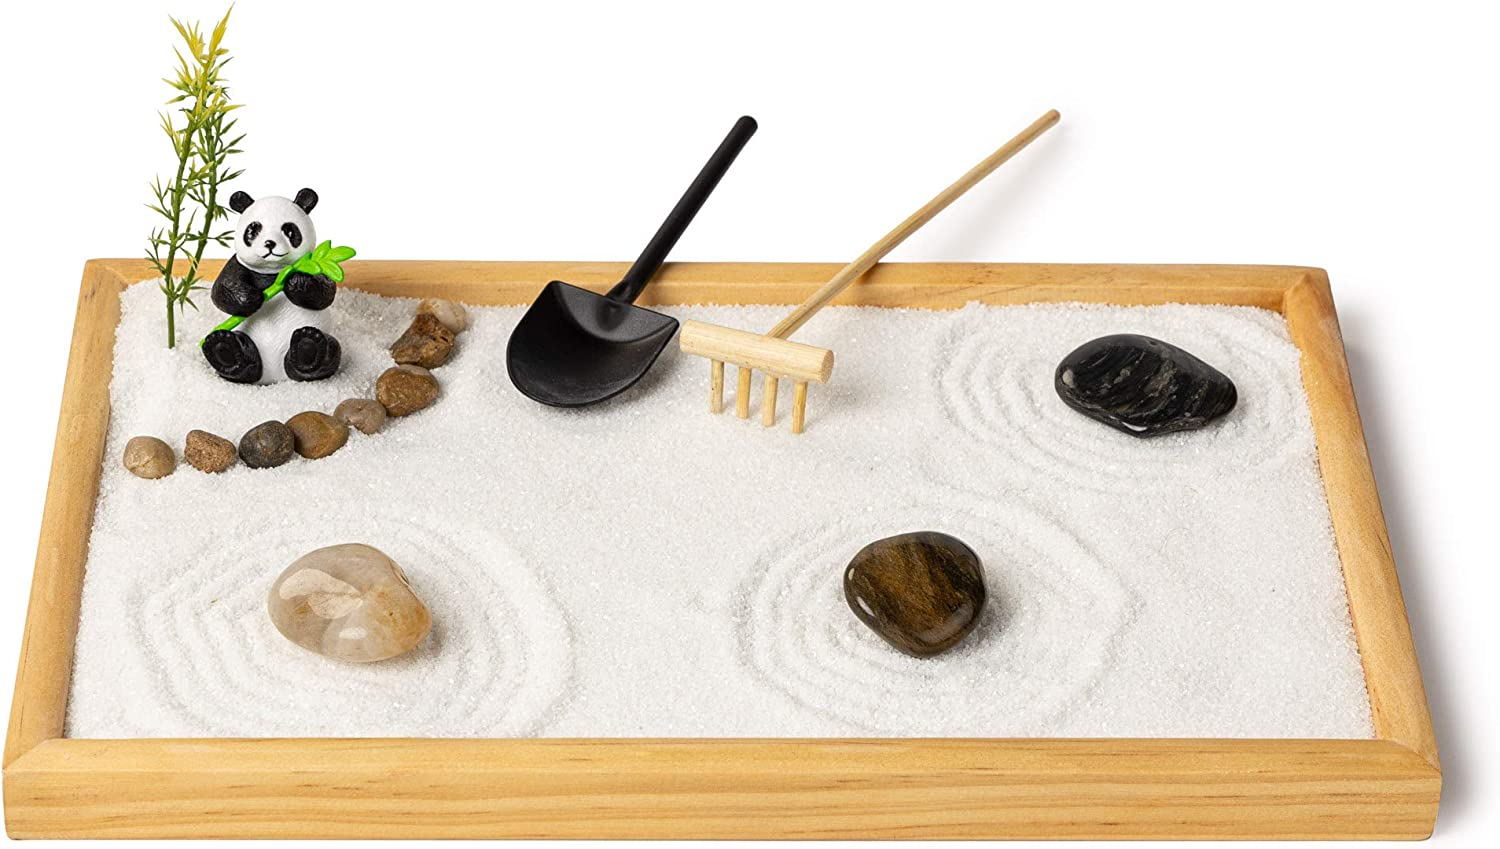 Gusta Products Zen Garden with Panda - 12x8 Inches Large - Premium Japanese Zen Garden Kit - Perfect Size for Home Office or Work Desk - Relaxation & Meditation Gift - Panda Lovers